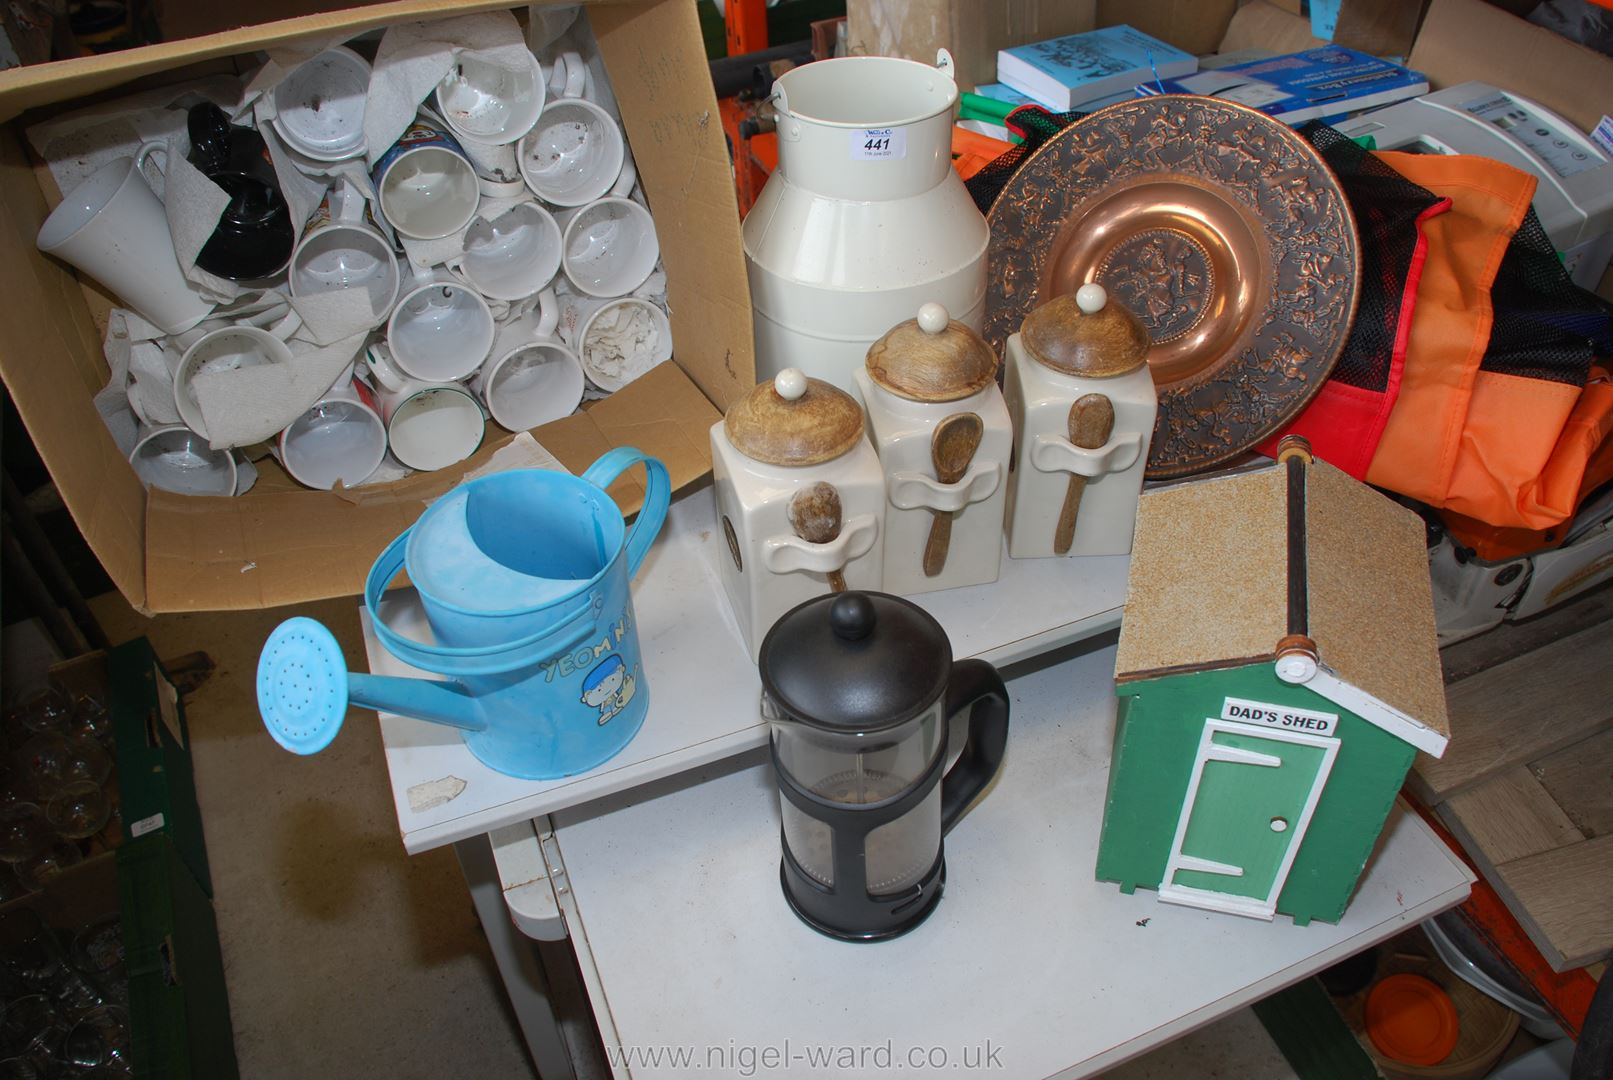 A box of various mugs, kitchen storage boxes and shopping baskets, etc.